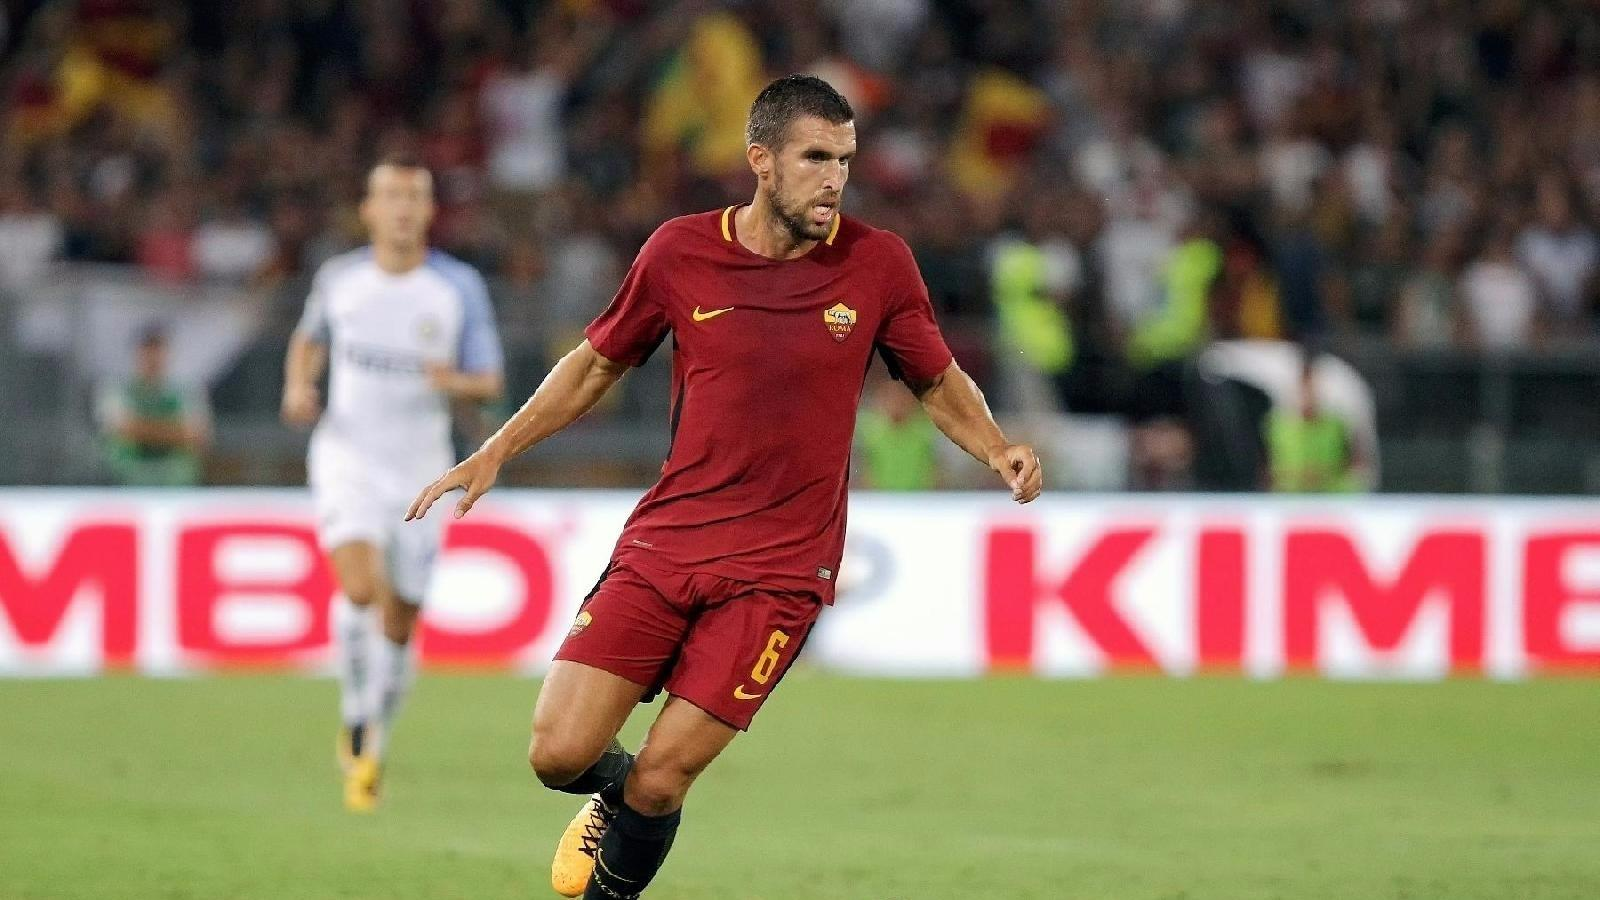 [VIDEO] La Roma ricorda il gol di Strootman al Napoli: